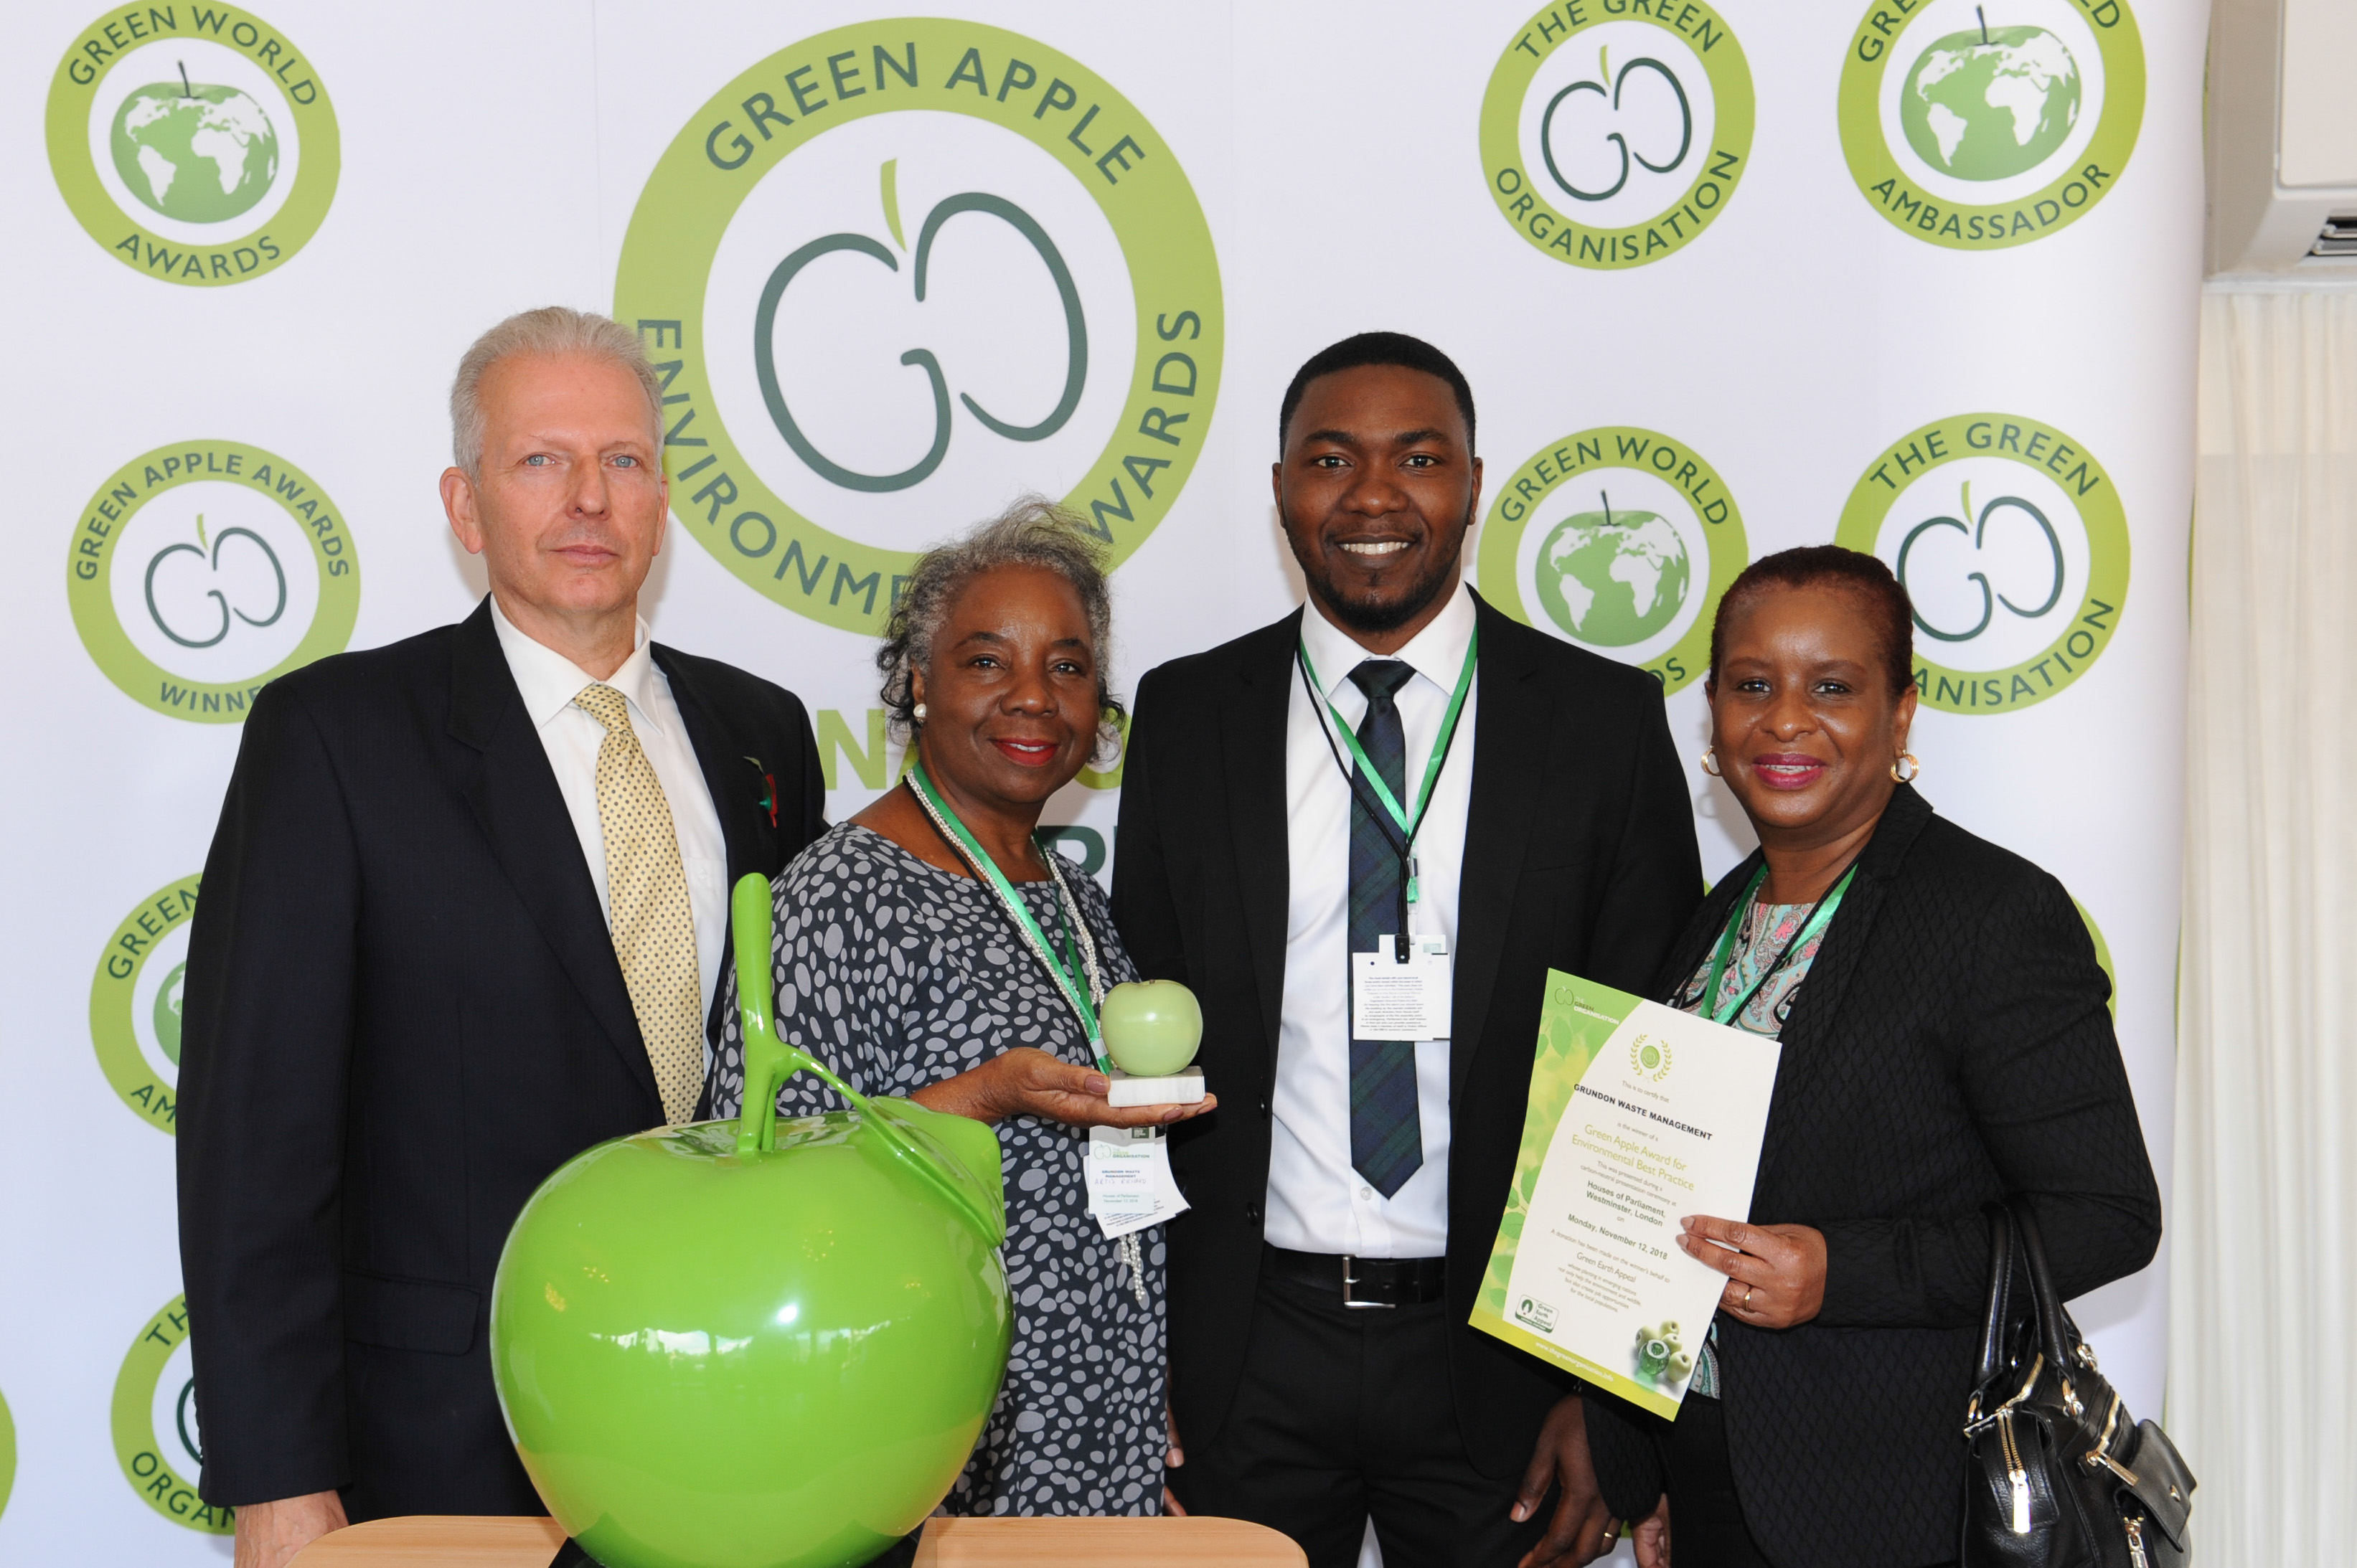 Successful partnership: Grundon's Toye Ogunleye, Waste Manager - NHS Trusts (centre); celebrates with Artis Richard and Brenda Brown from London North West Healthcare NHS Trust after scooping a bronze Green Apple Award in the Health Wastes Management category.